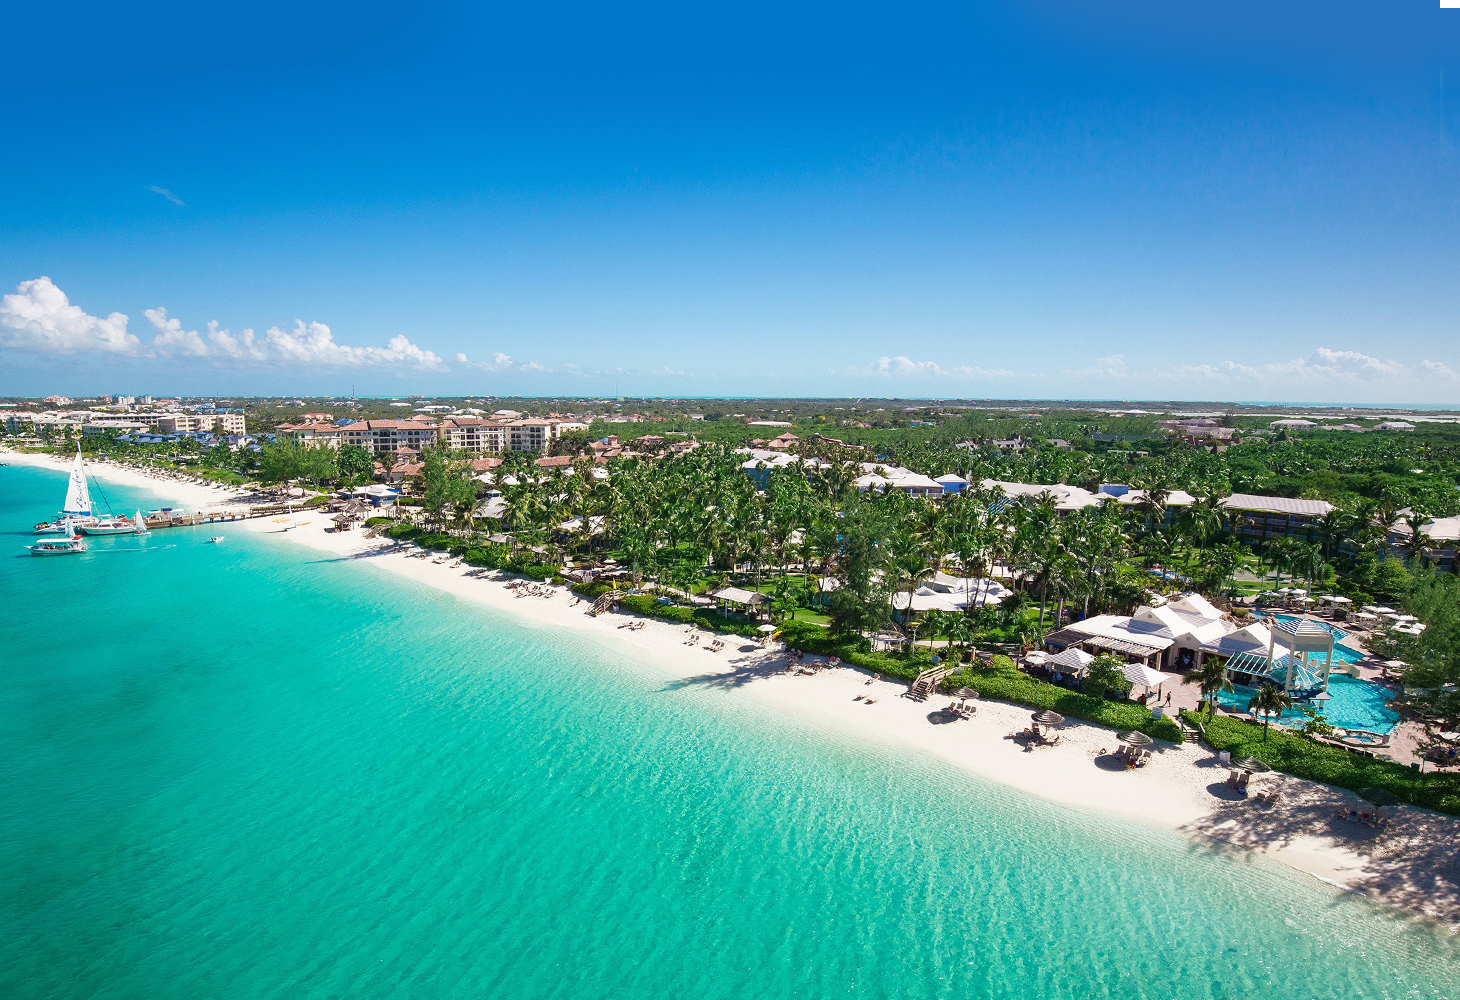 Family Resort Turks and Caicos Beaches